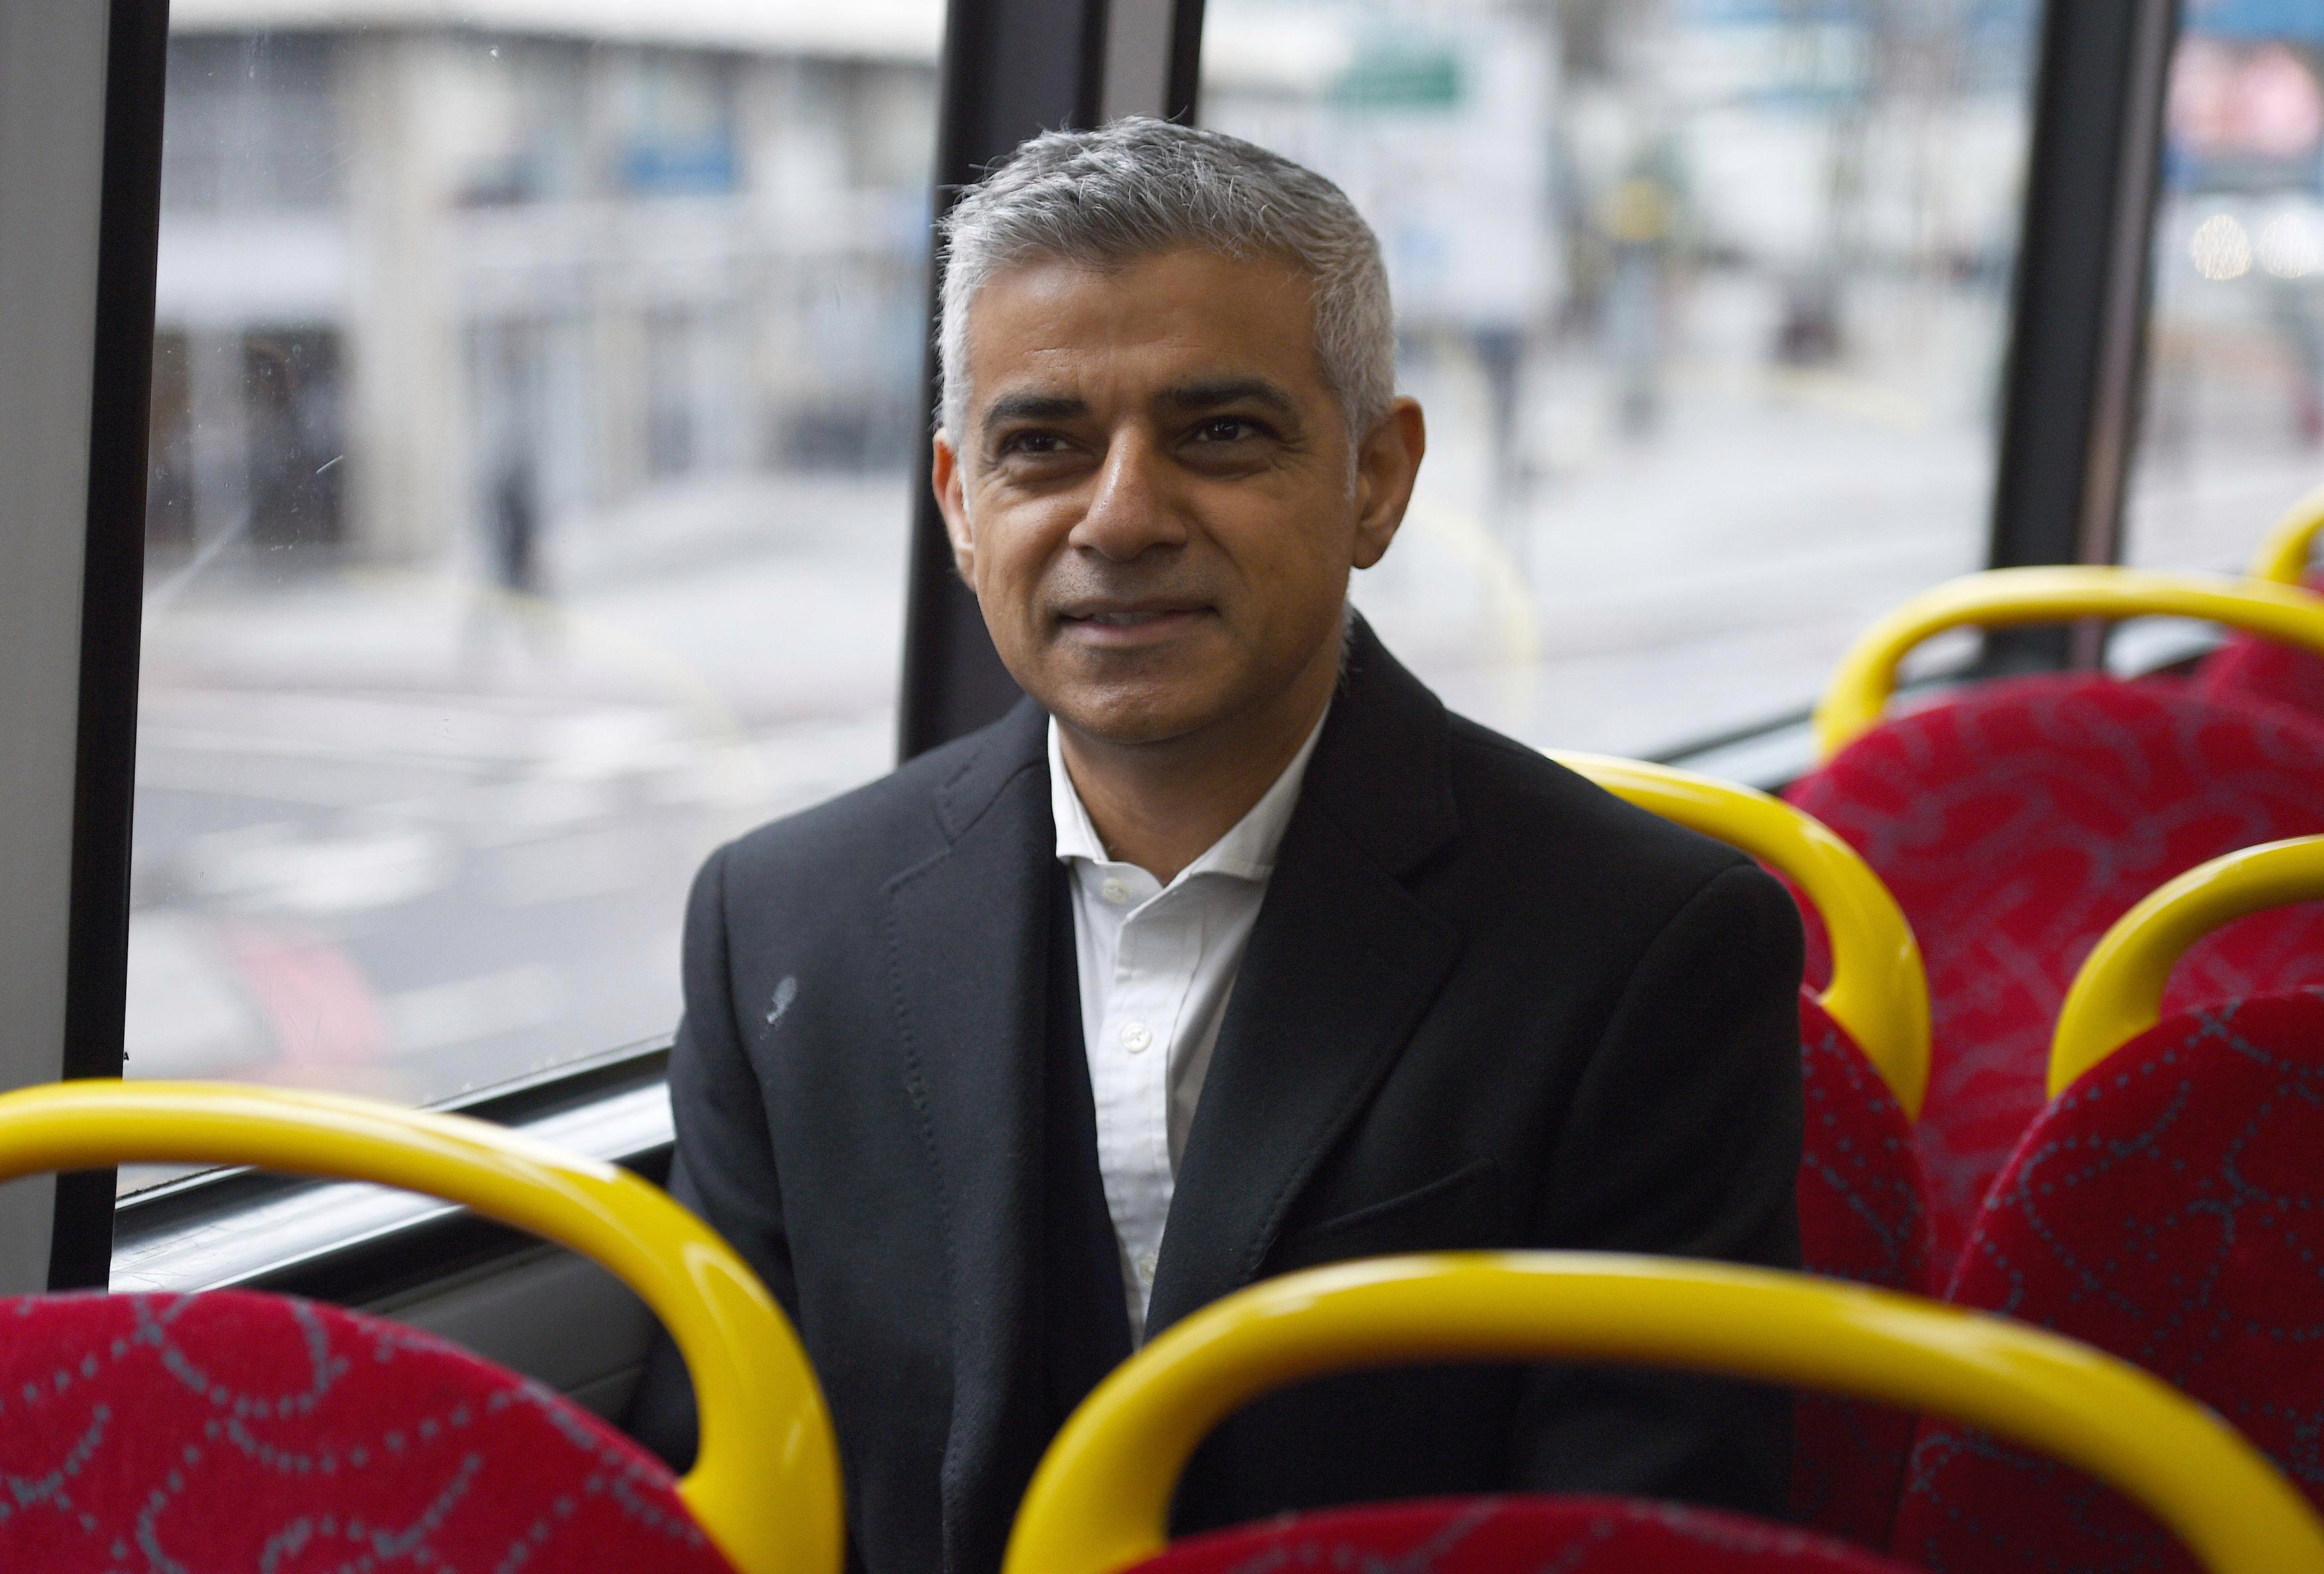 Sadiq Khan slams Corbyn for failing to tackle anti-semitism in Labour – and says he wishes Trump would leave him alone on Twitter